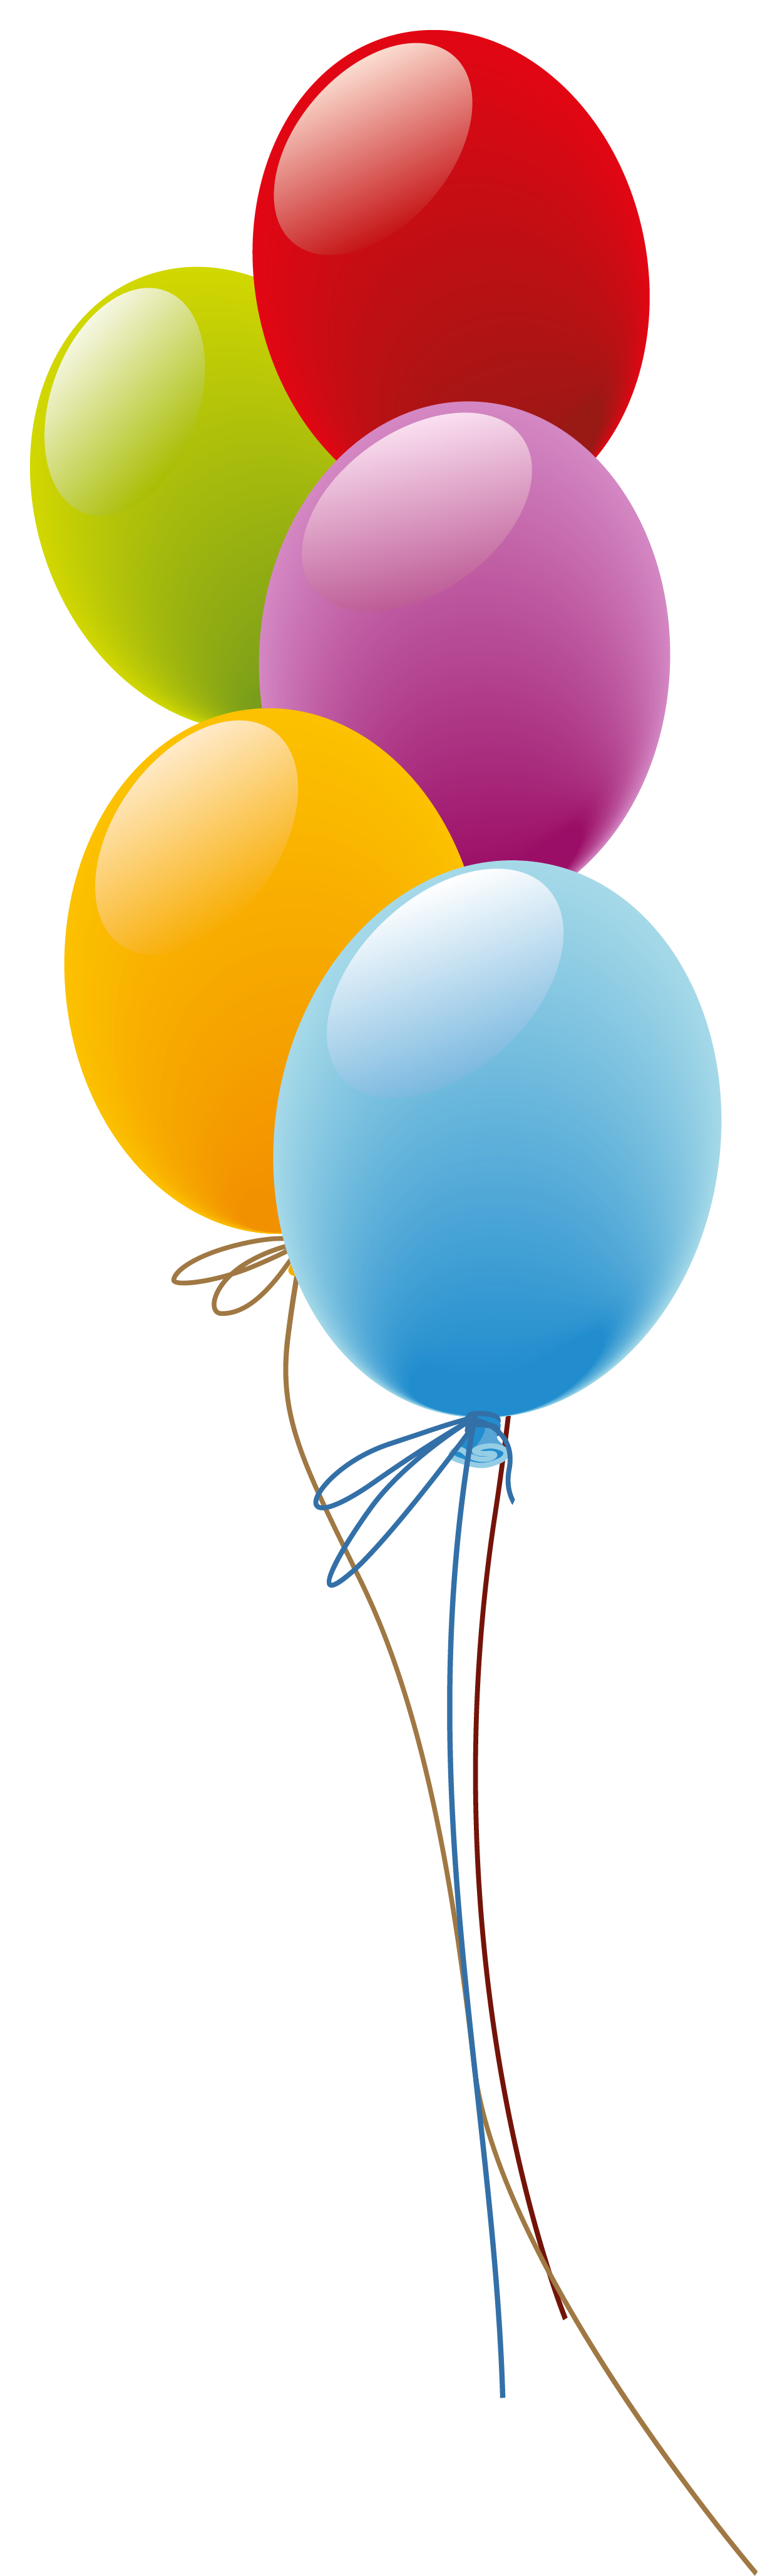 Balloons png picture artistic. Cliparts zum 80 geburtstag